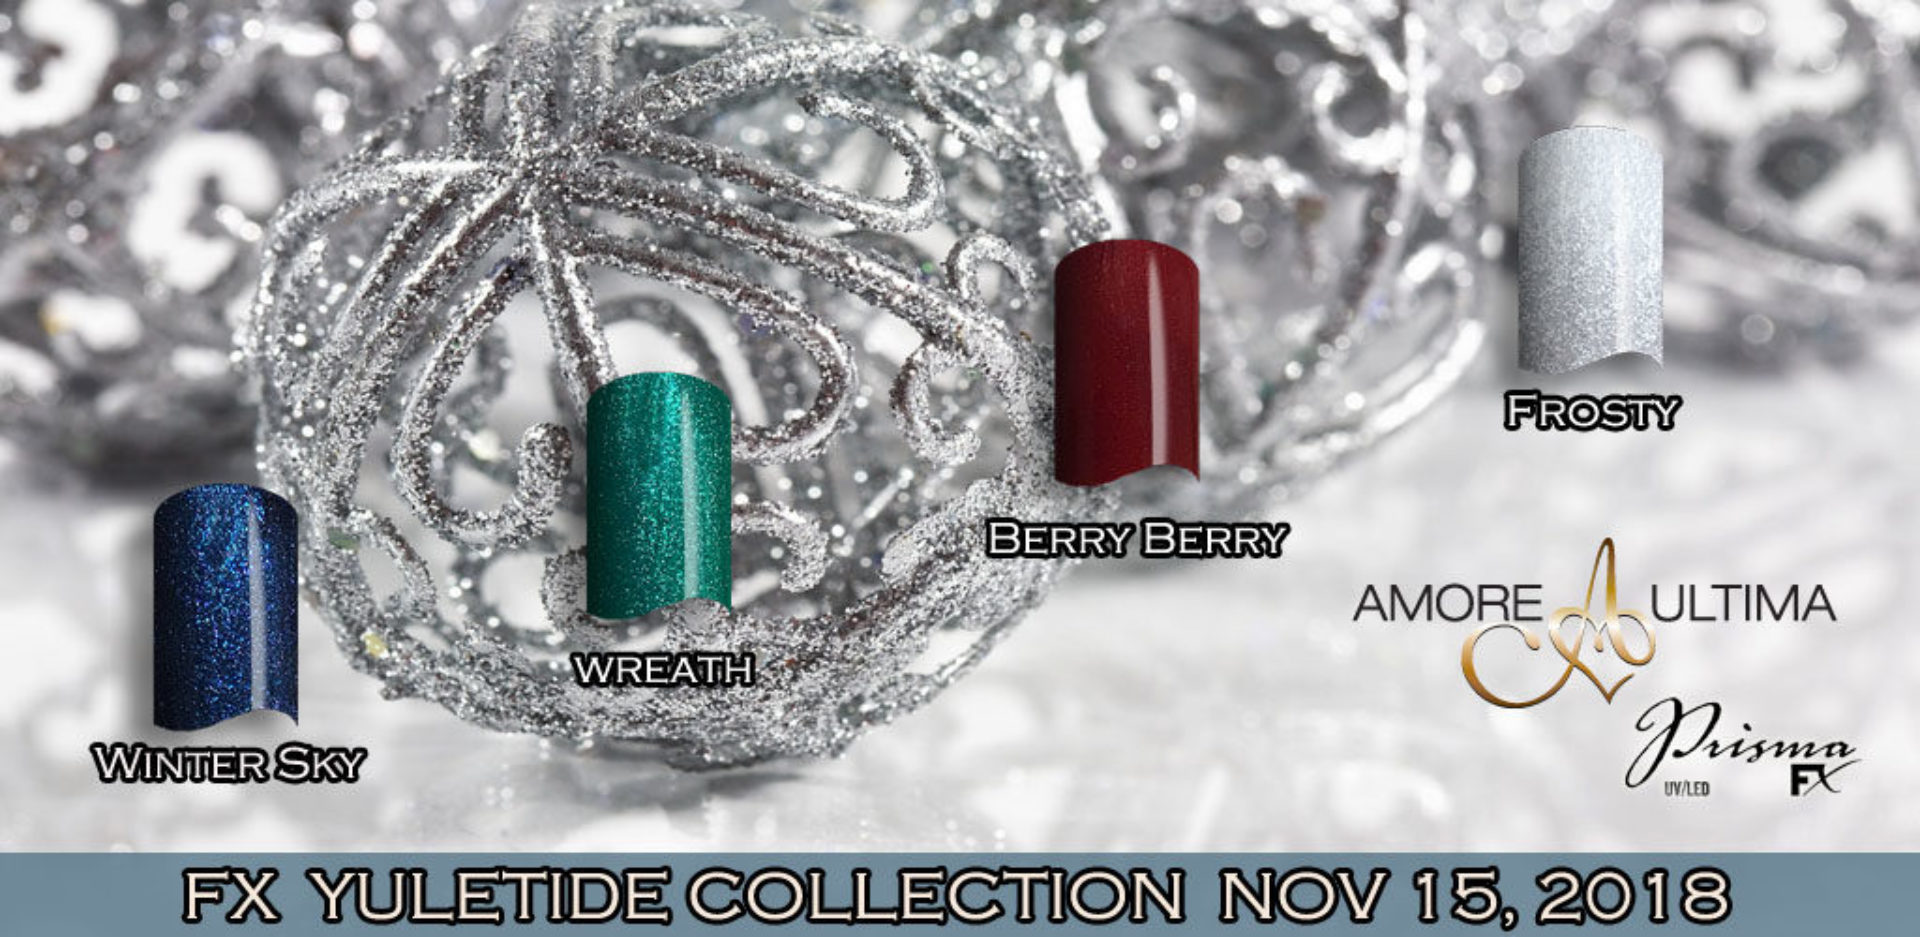 FX Yuletide Collection 2018